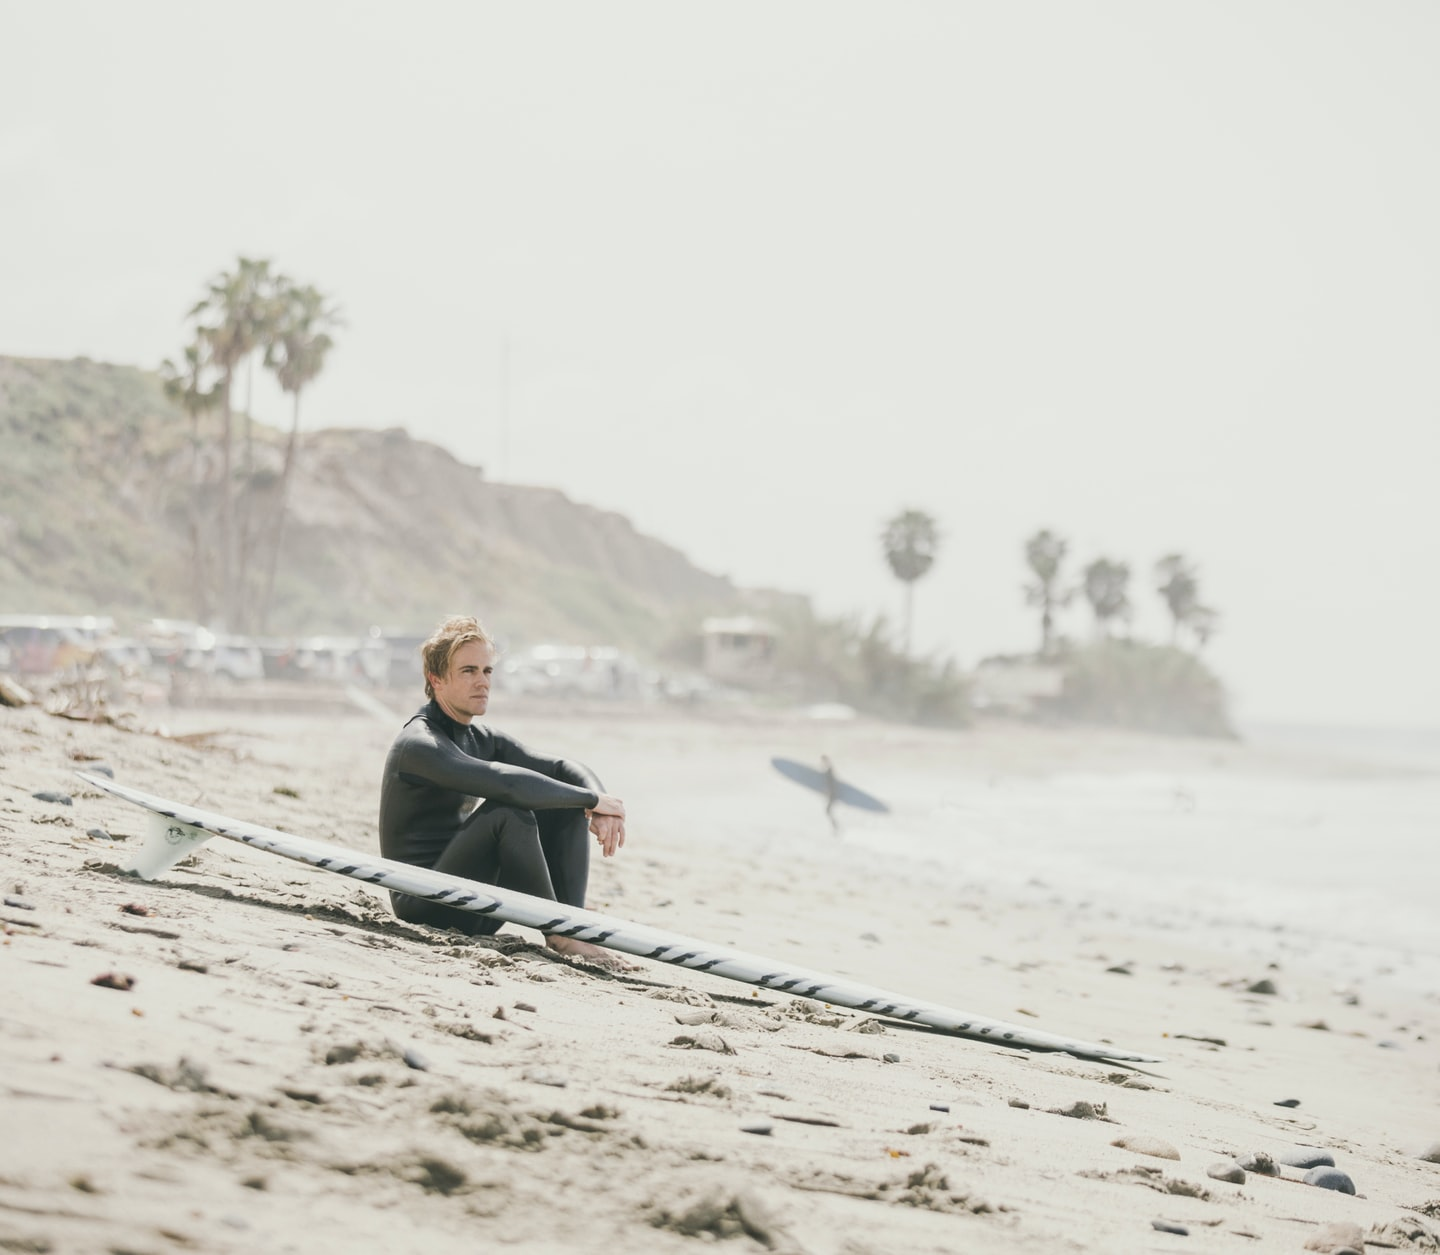 A man sitting on the beach next to his surfboard, looking into the distance.